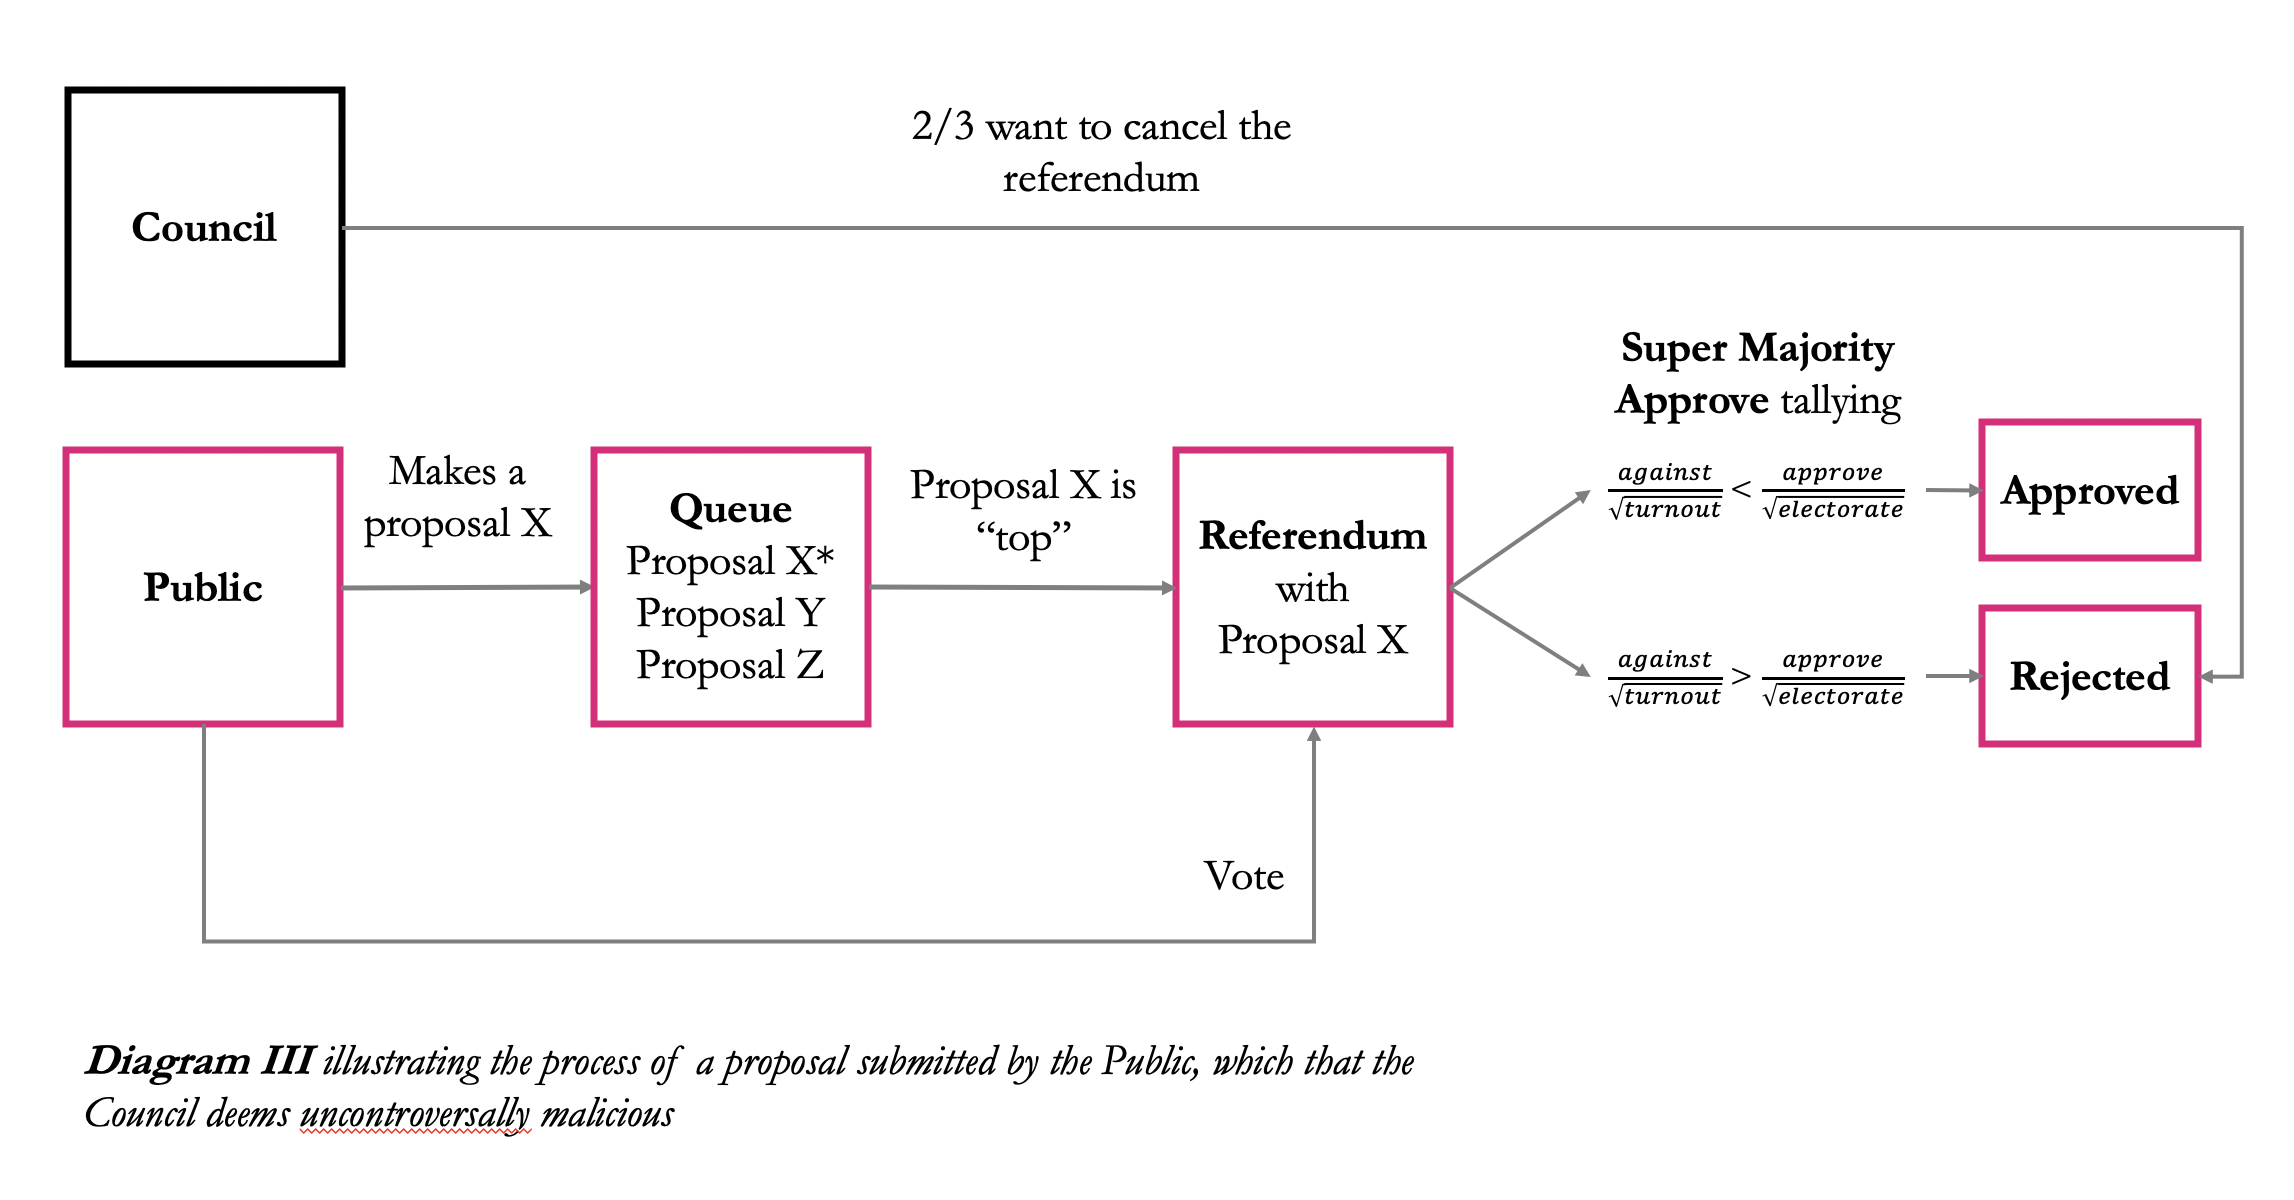 Diagram III illustrating the process of a proposal submitted by the Public, which that the Council deems uncontroversally mal